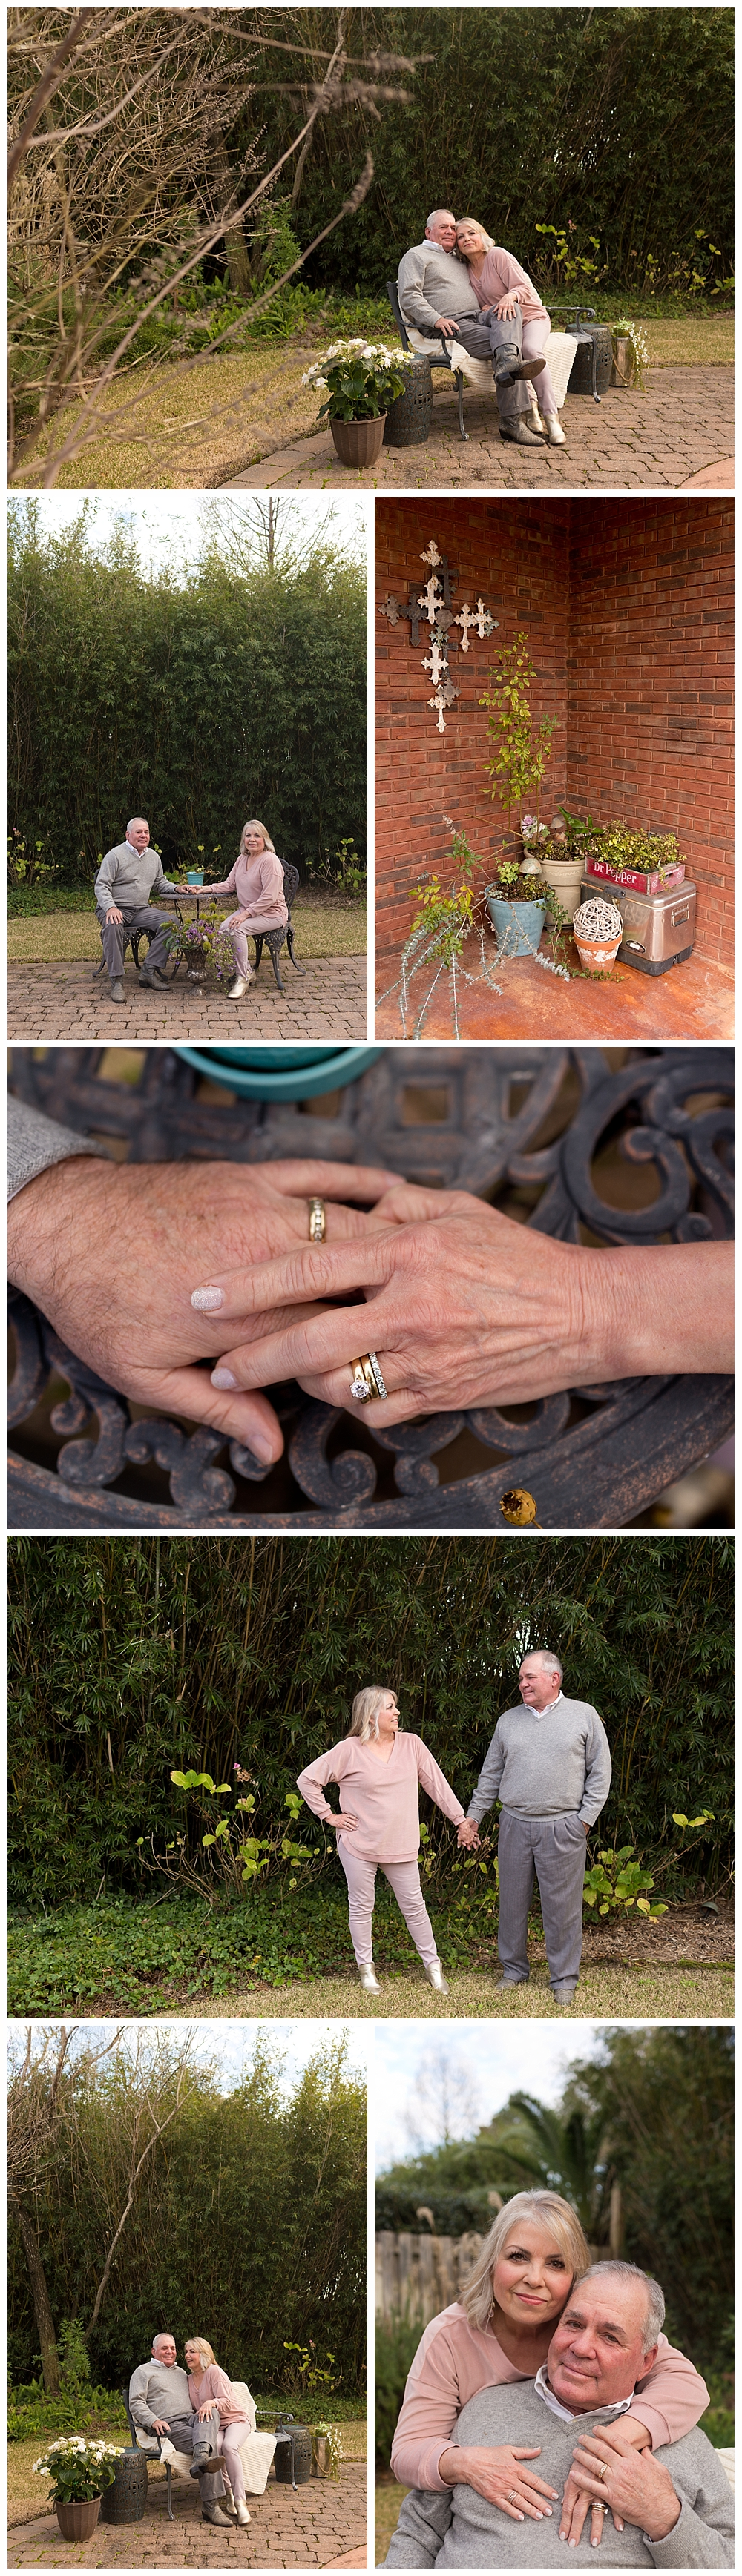 mature couple's portrait session in back yard - Ocean Springs family photographer